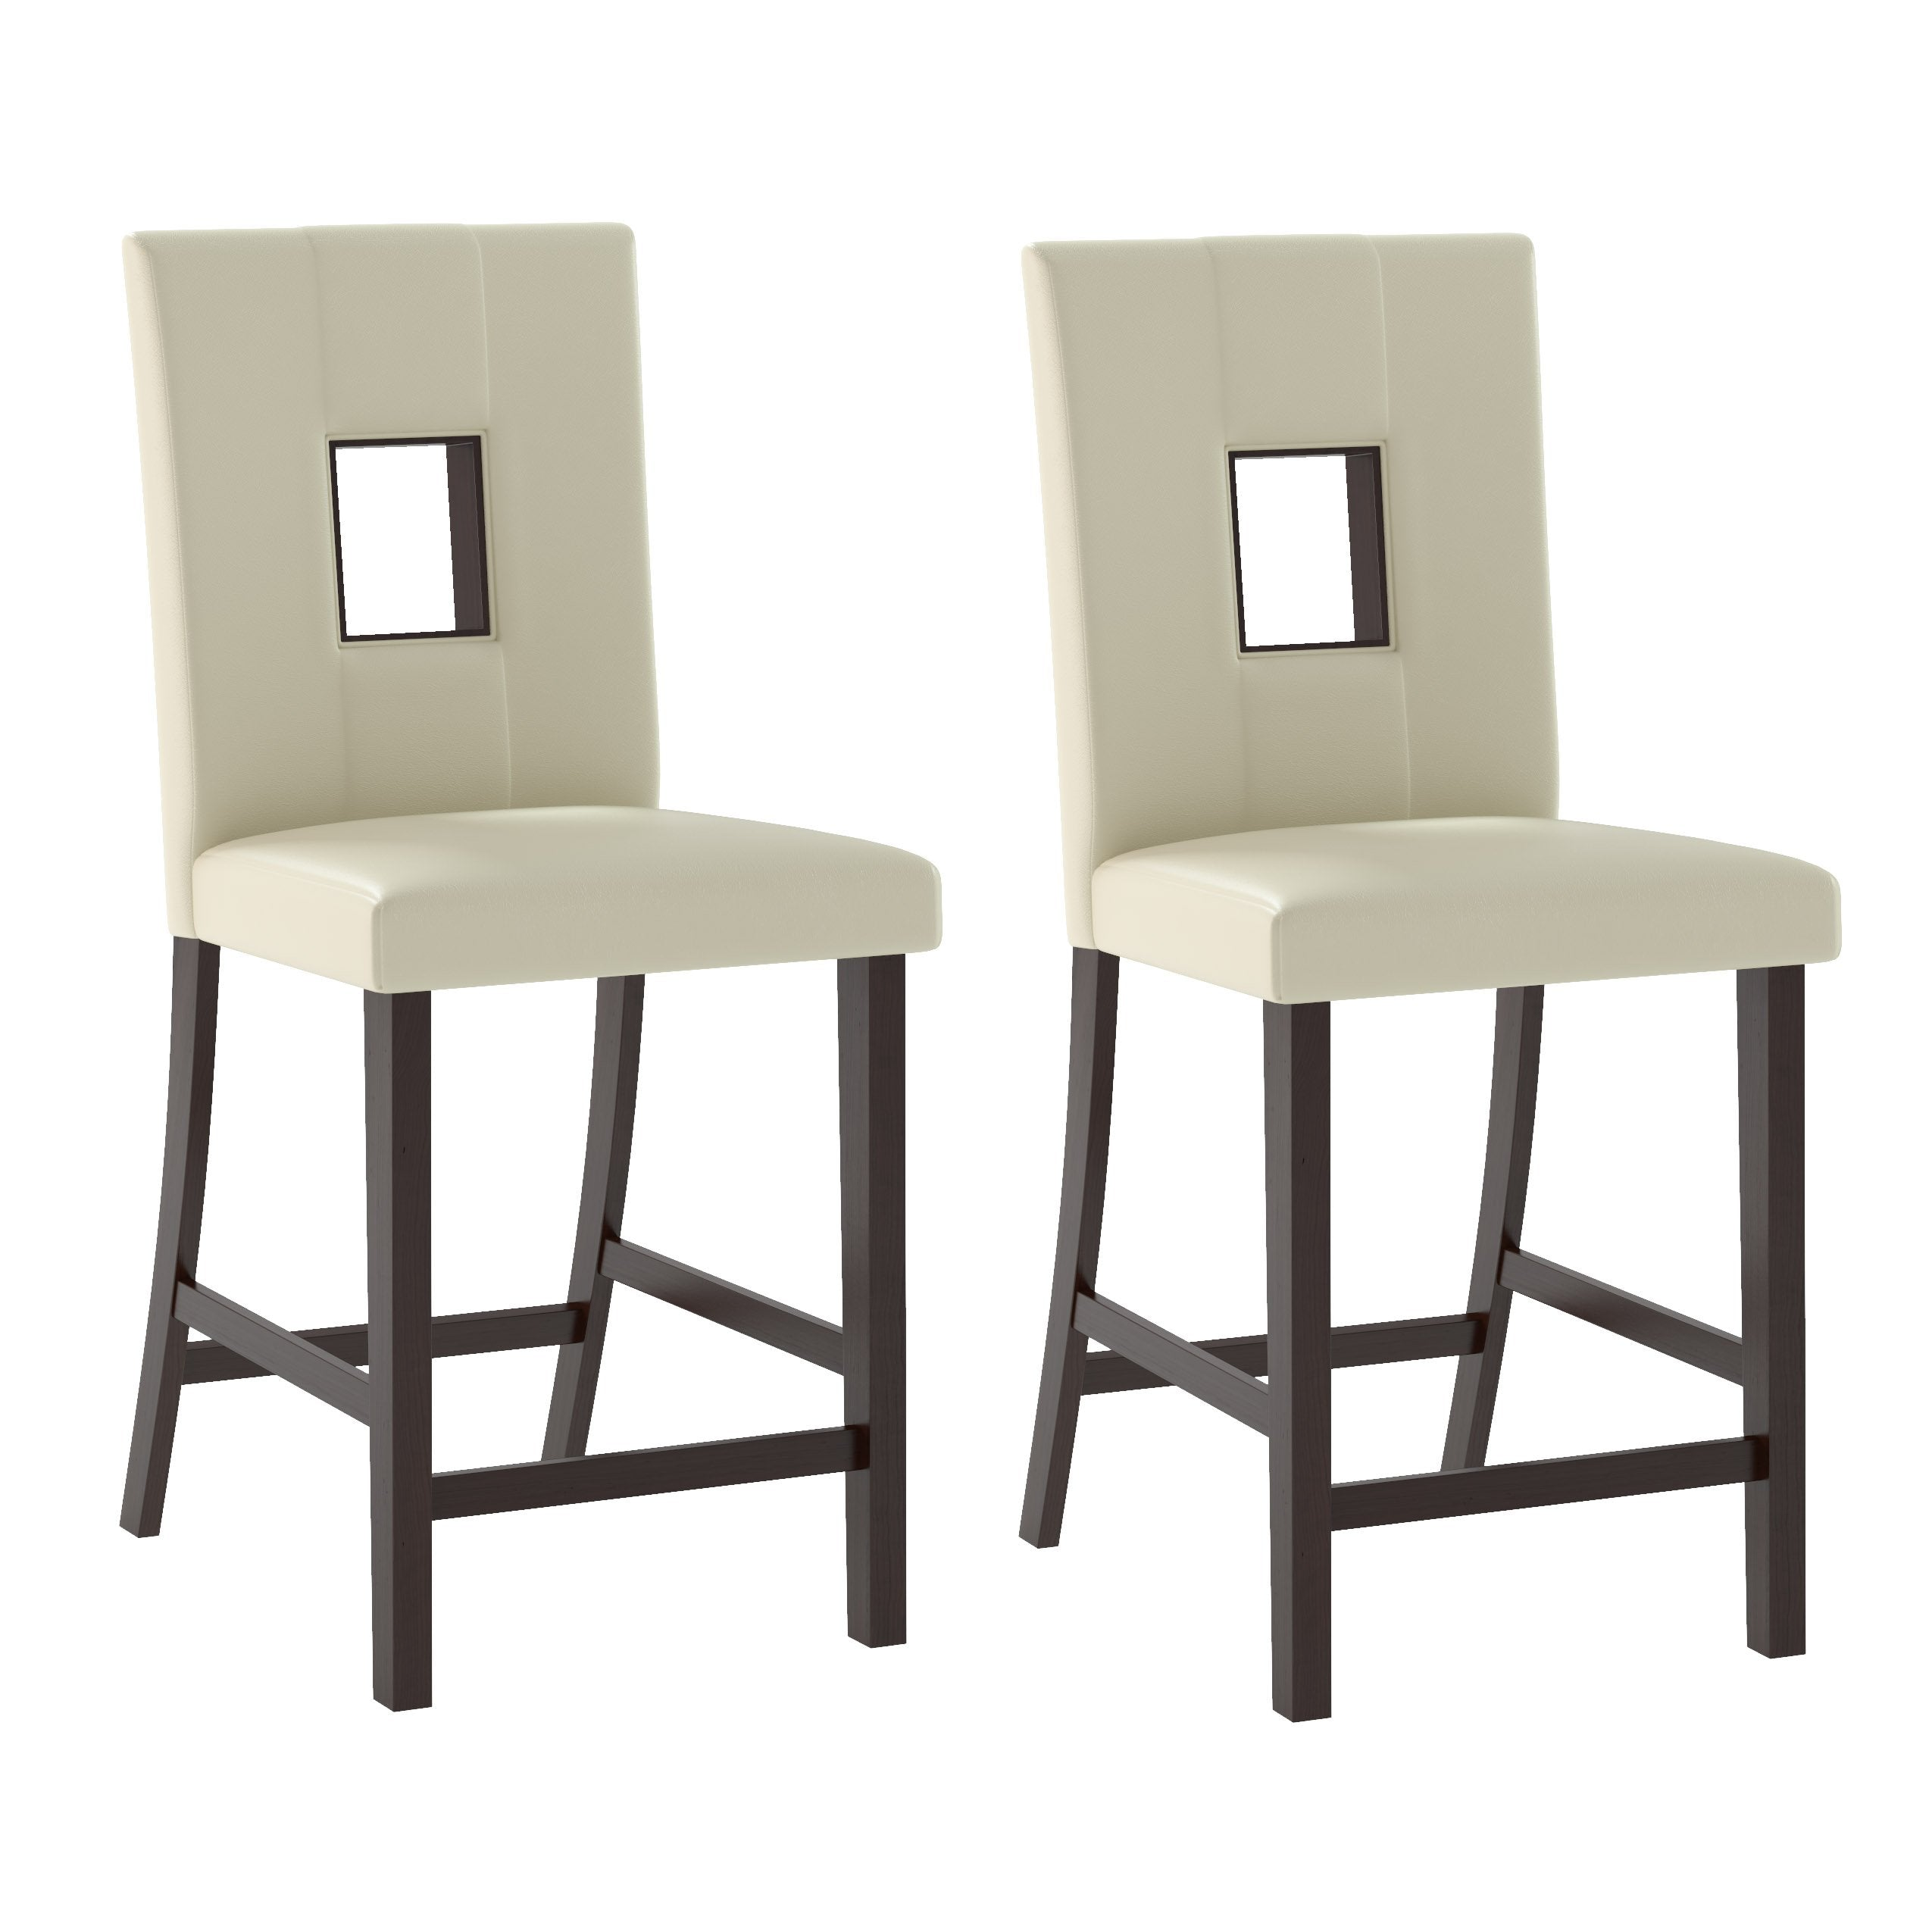 Superb White Leatherette Counter Height Dining Chairs Set Of 2 Pdpeps Interior Chair Design Pdpepsorg